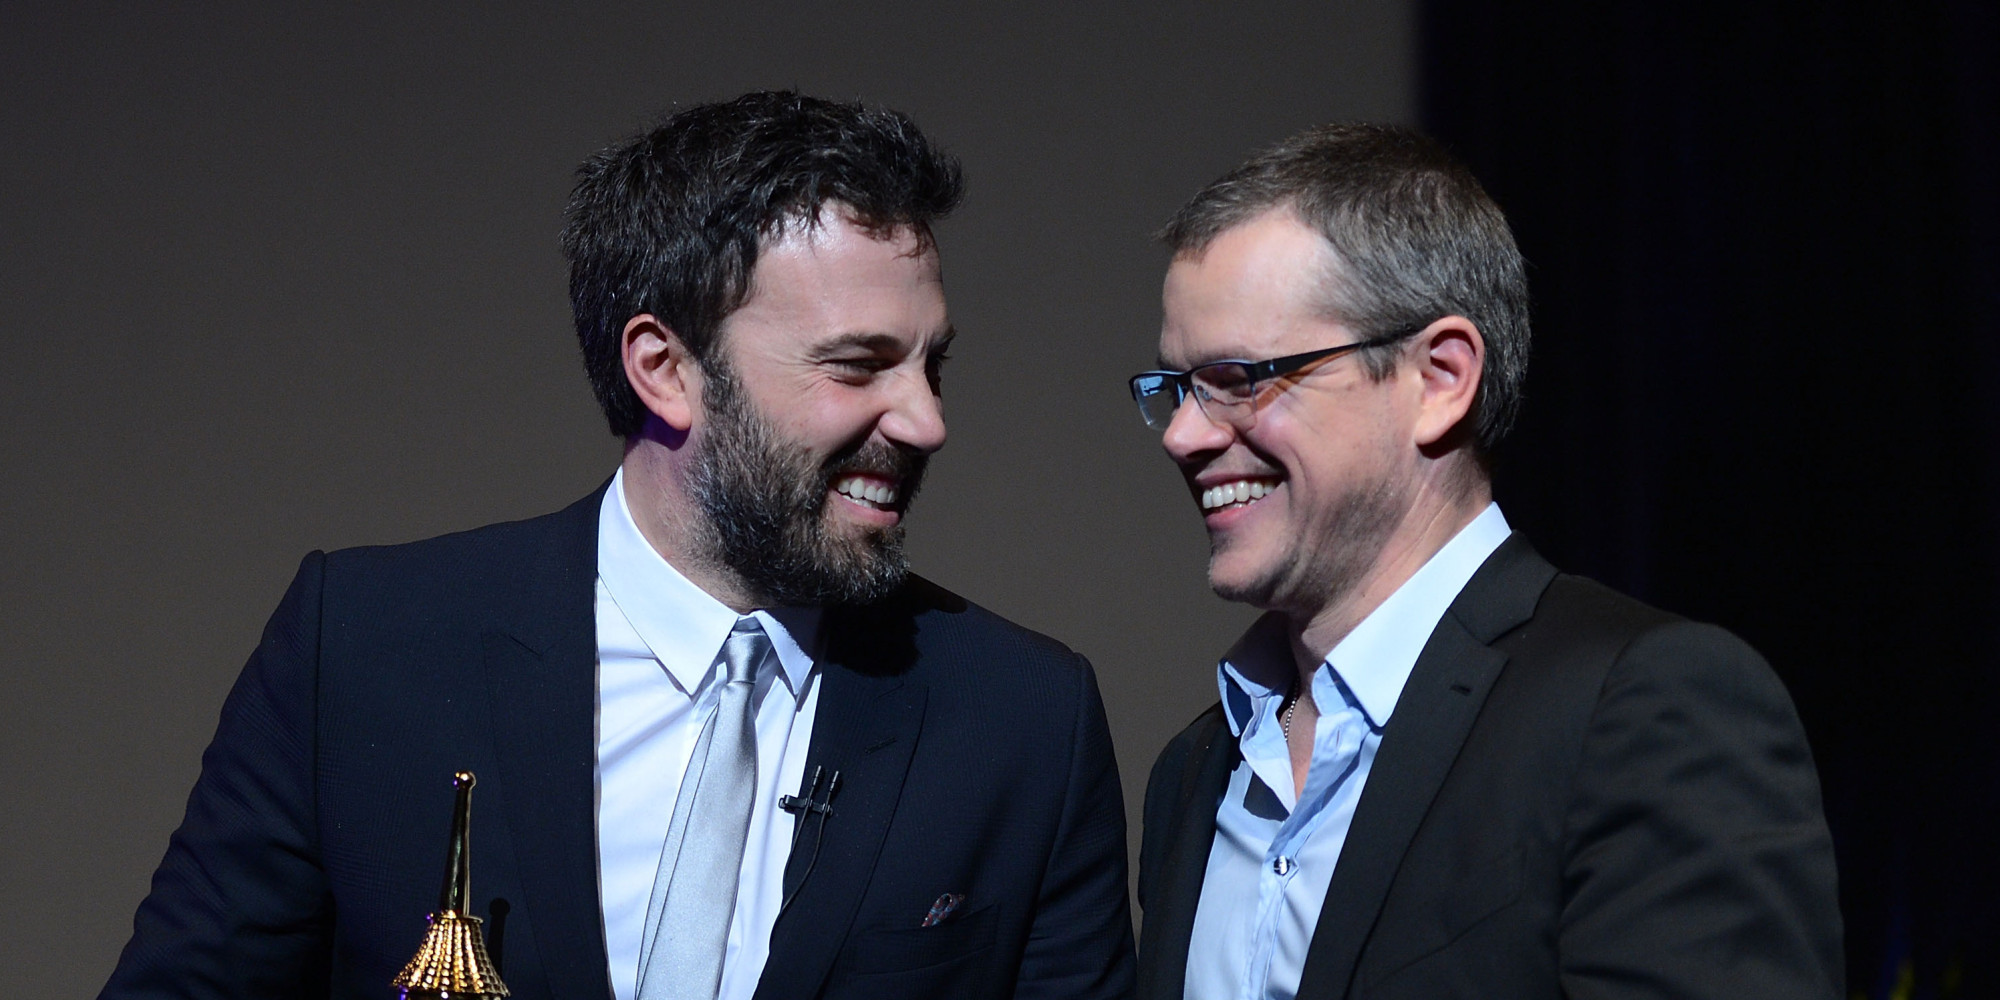 Matt Damon, Ben Affleck Big Screen Reunion Rumors Fly